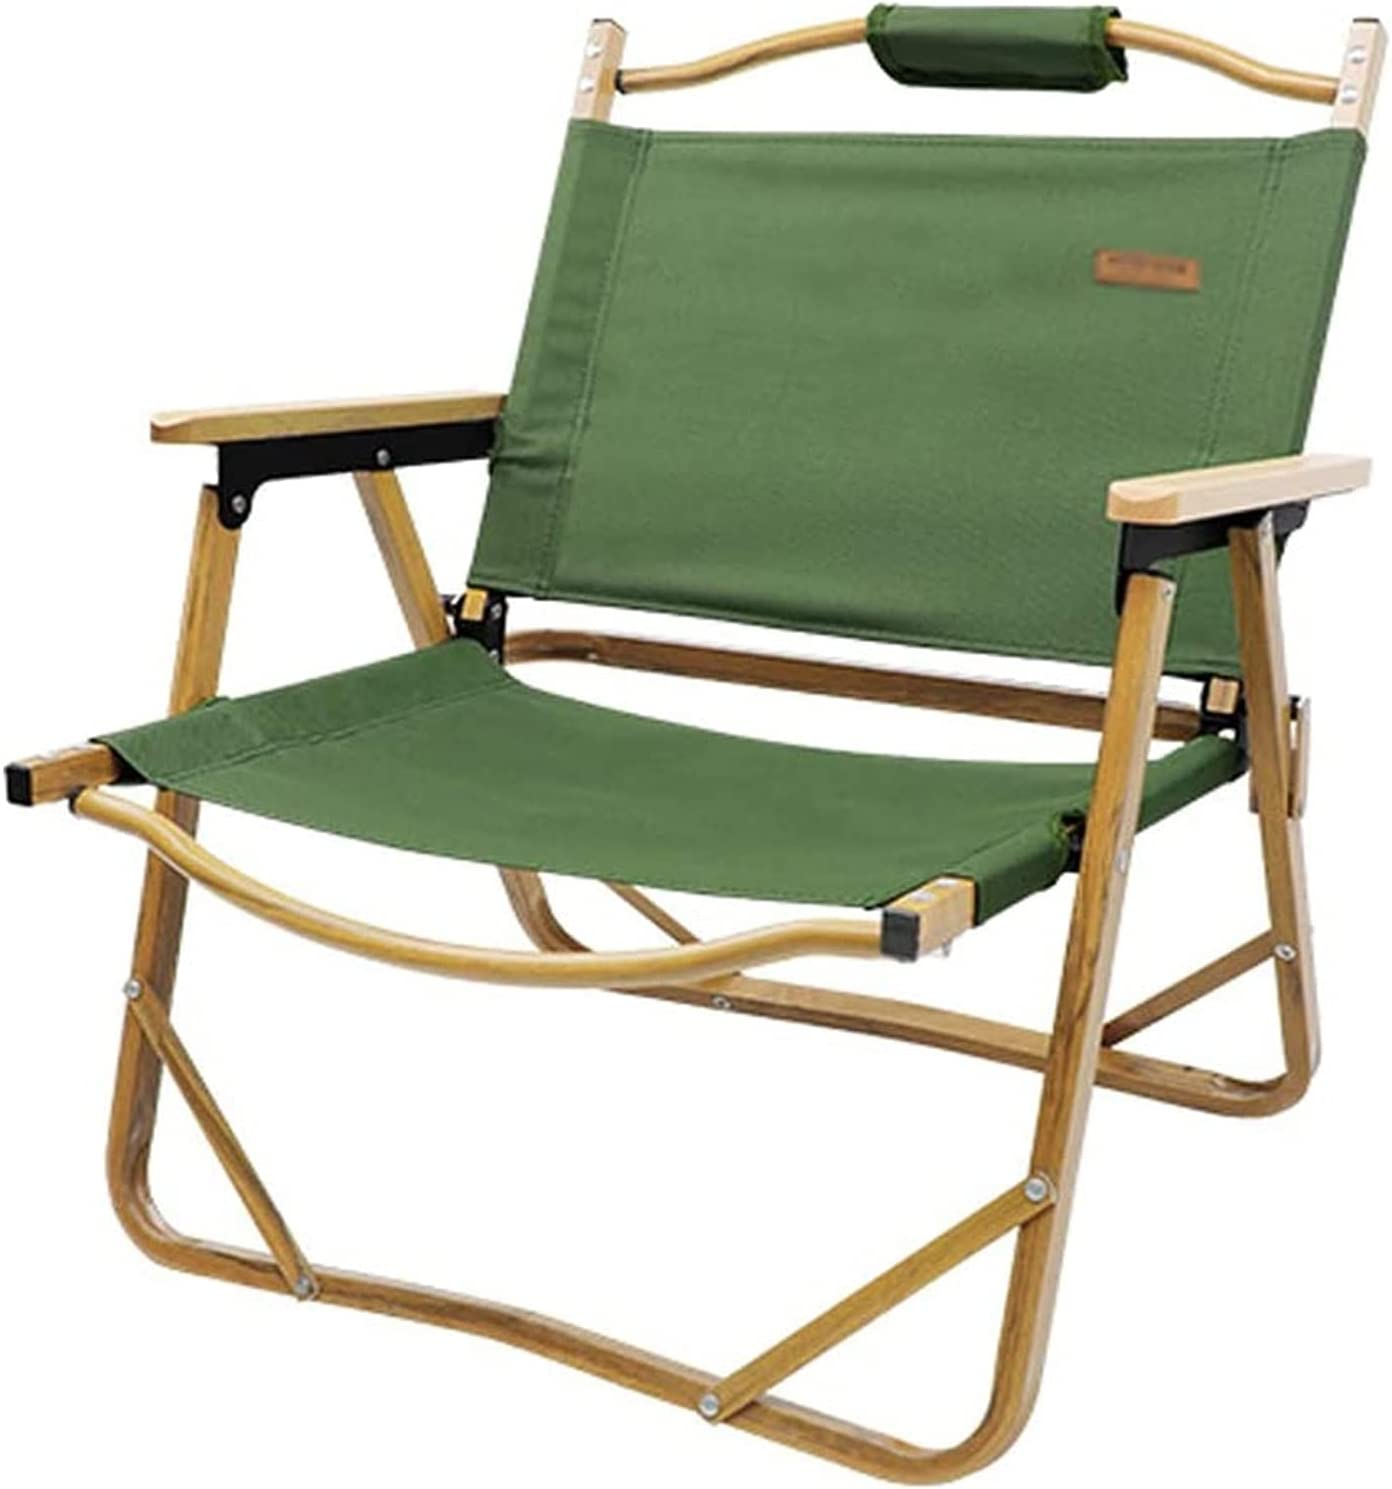 LSZ Deluxe Super sale period limited Camping Chair Folding Wood Grain Allo Aluminum